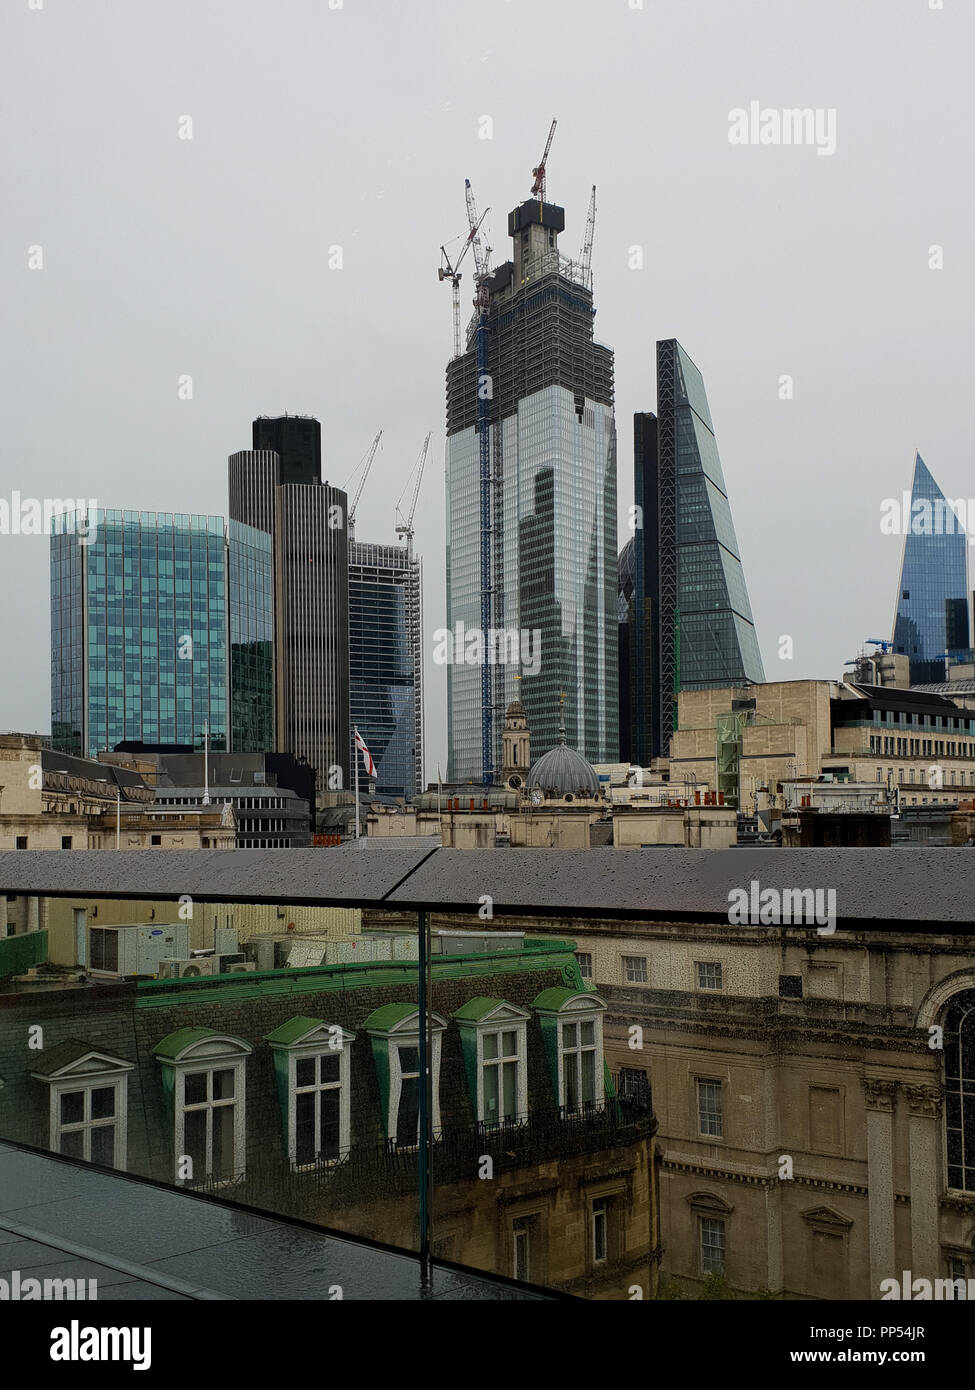 London, UK. 23rd Sept 2018. View of Tower 42 and The Scalpel from the roof top of Bloomberg European Headquarters. Bloomberg takes part in the 26th London Open House weekend Bloomberg's European headquarters is the world's most sustainable office building. Home to the financial technology and information company's 4,000 London-based employees, its unique design promotes collaboration and innovation. Stock Photo